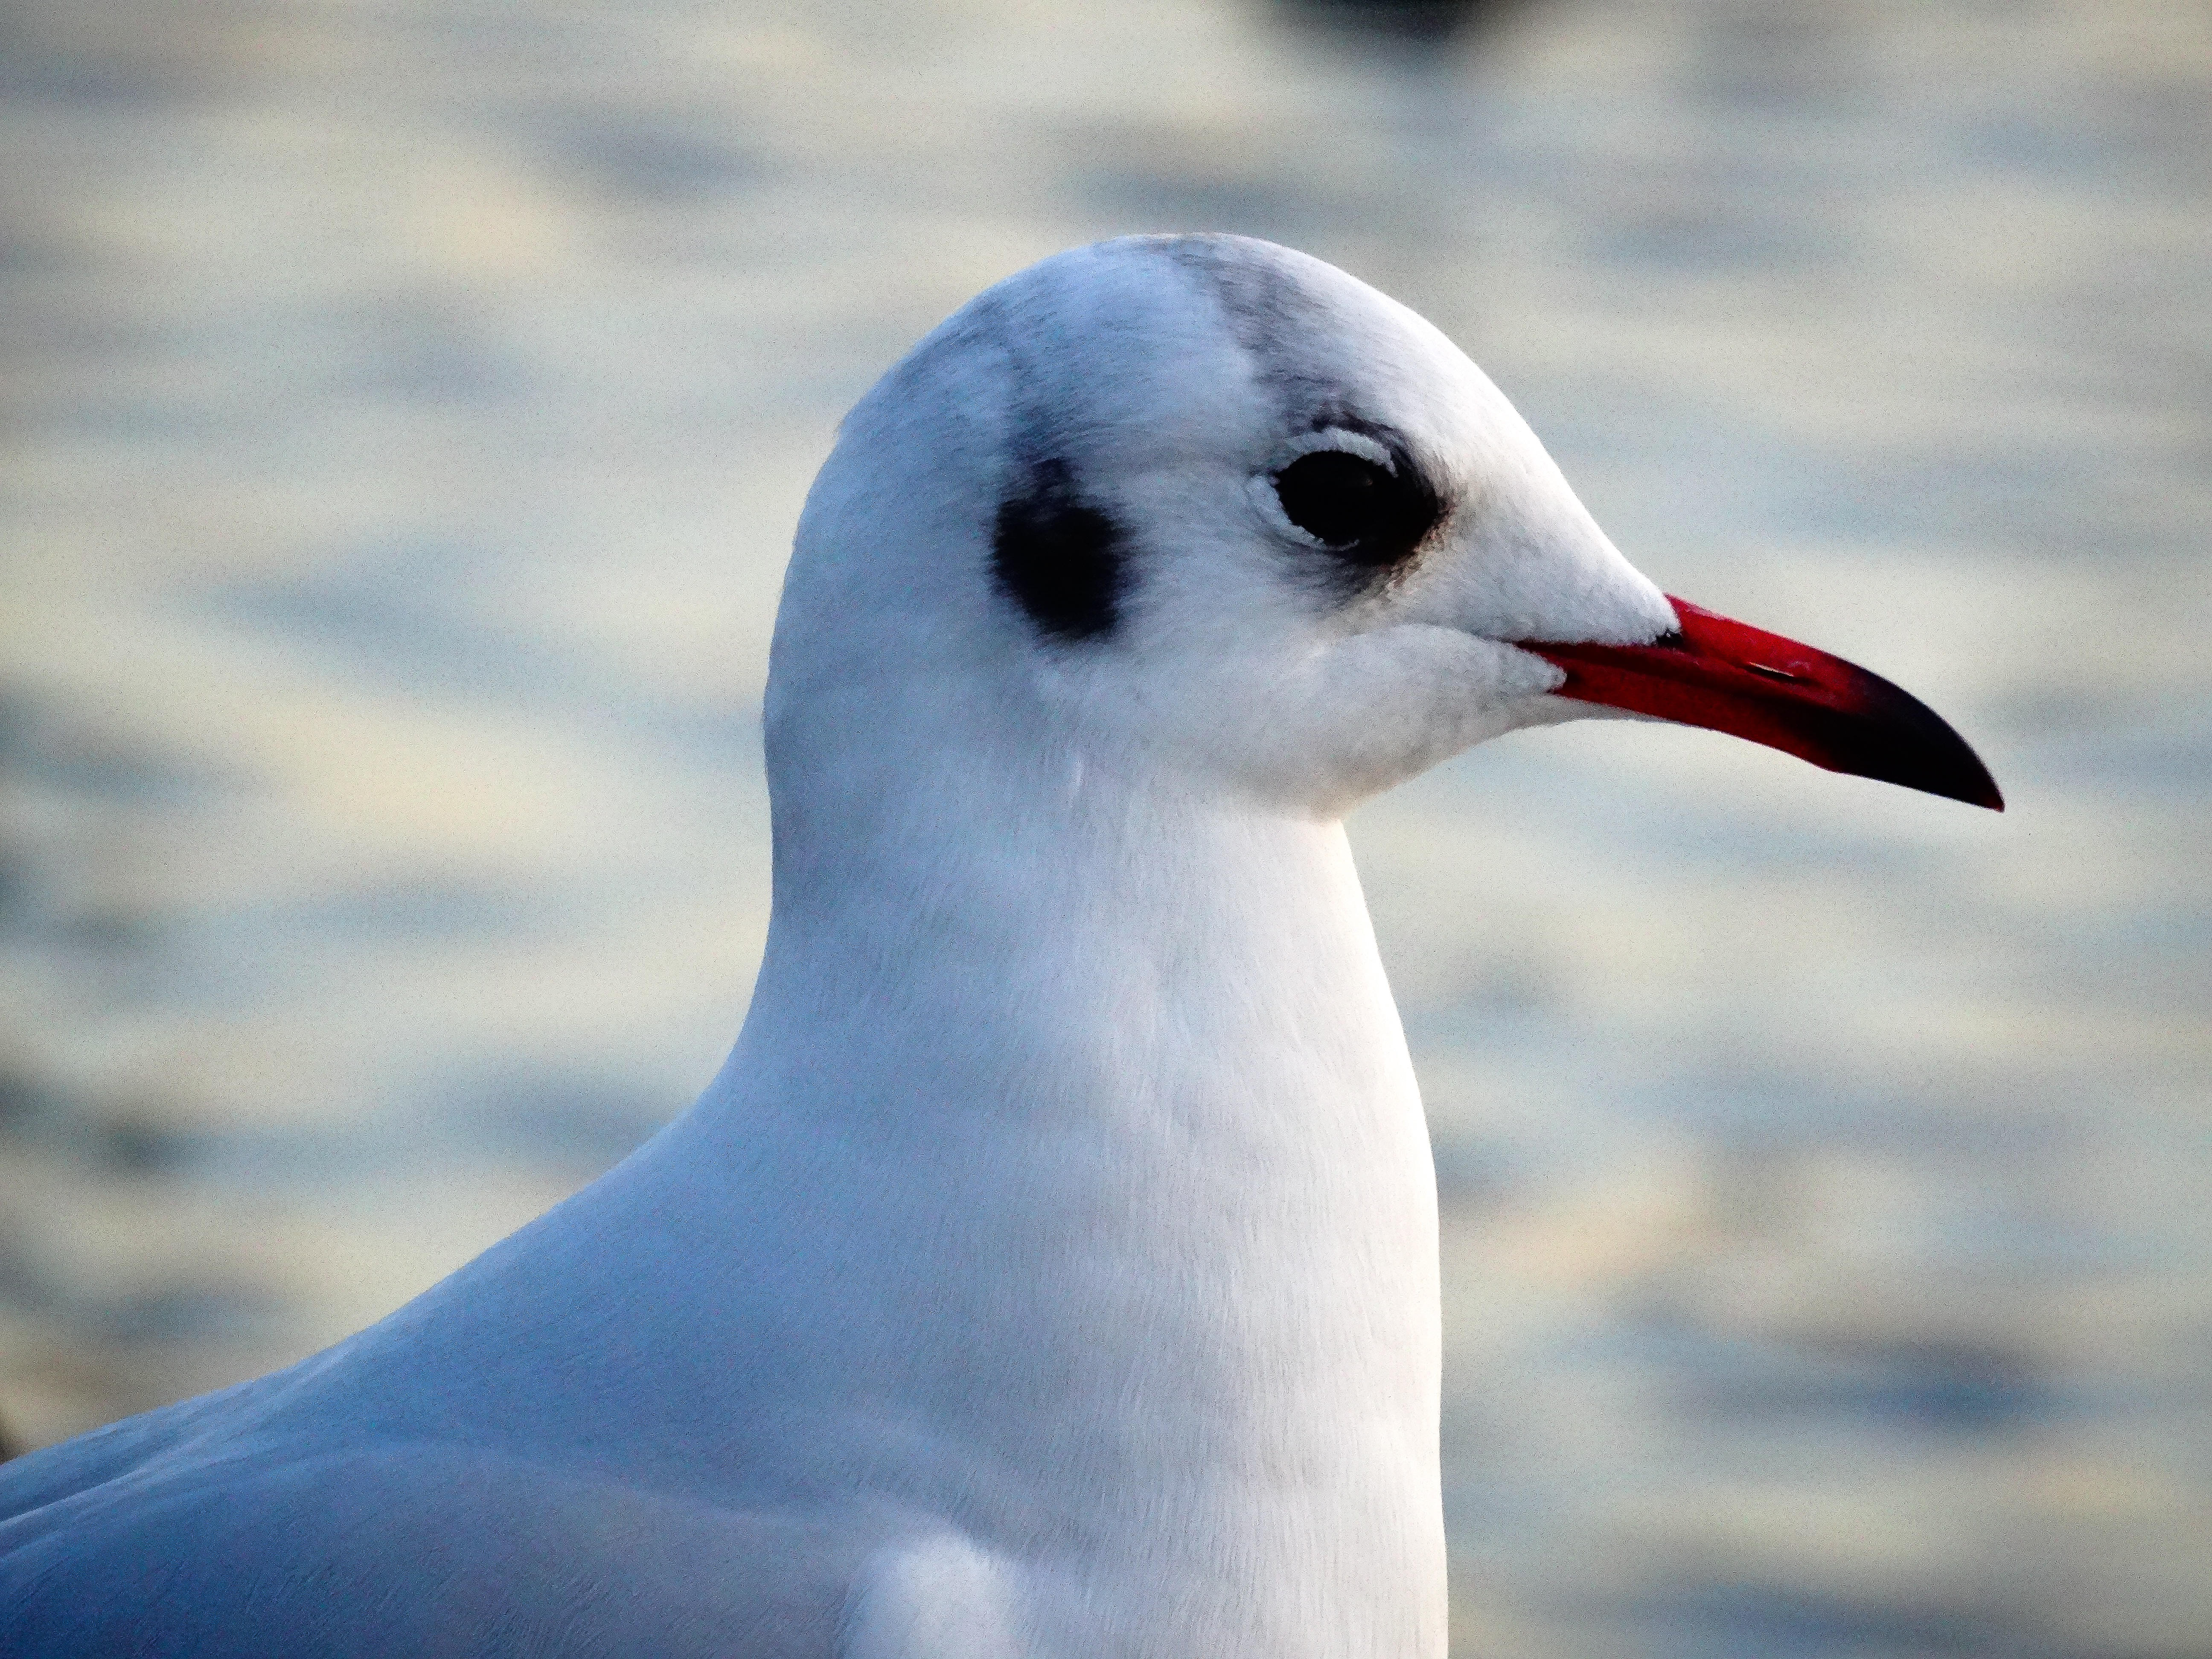 137477 download wallpaper Animals, Gull, Seagull, Bird, Beak screensavers and pictures for free